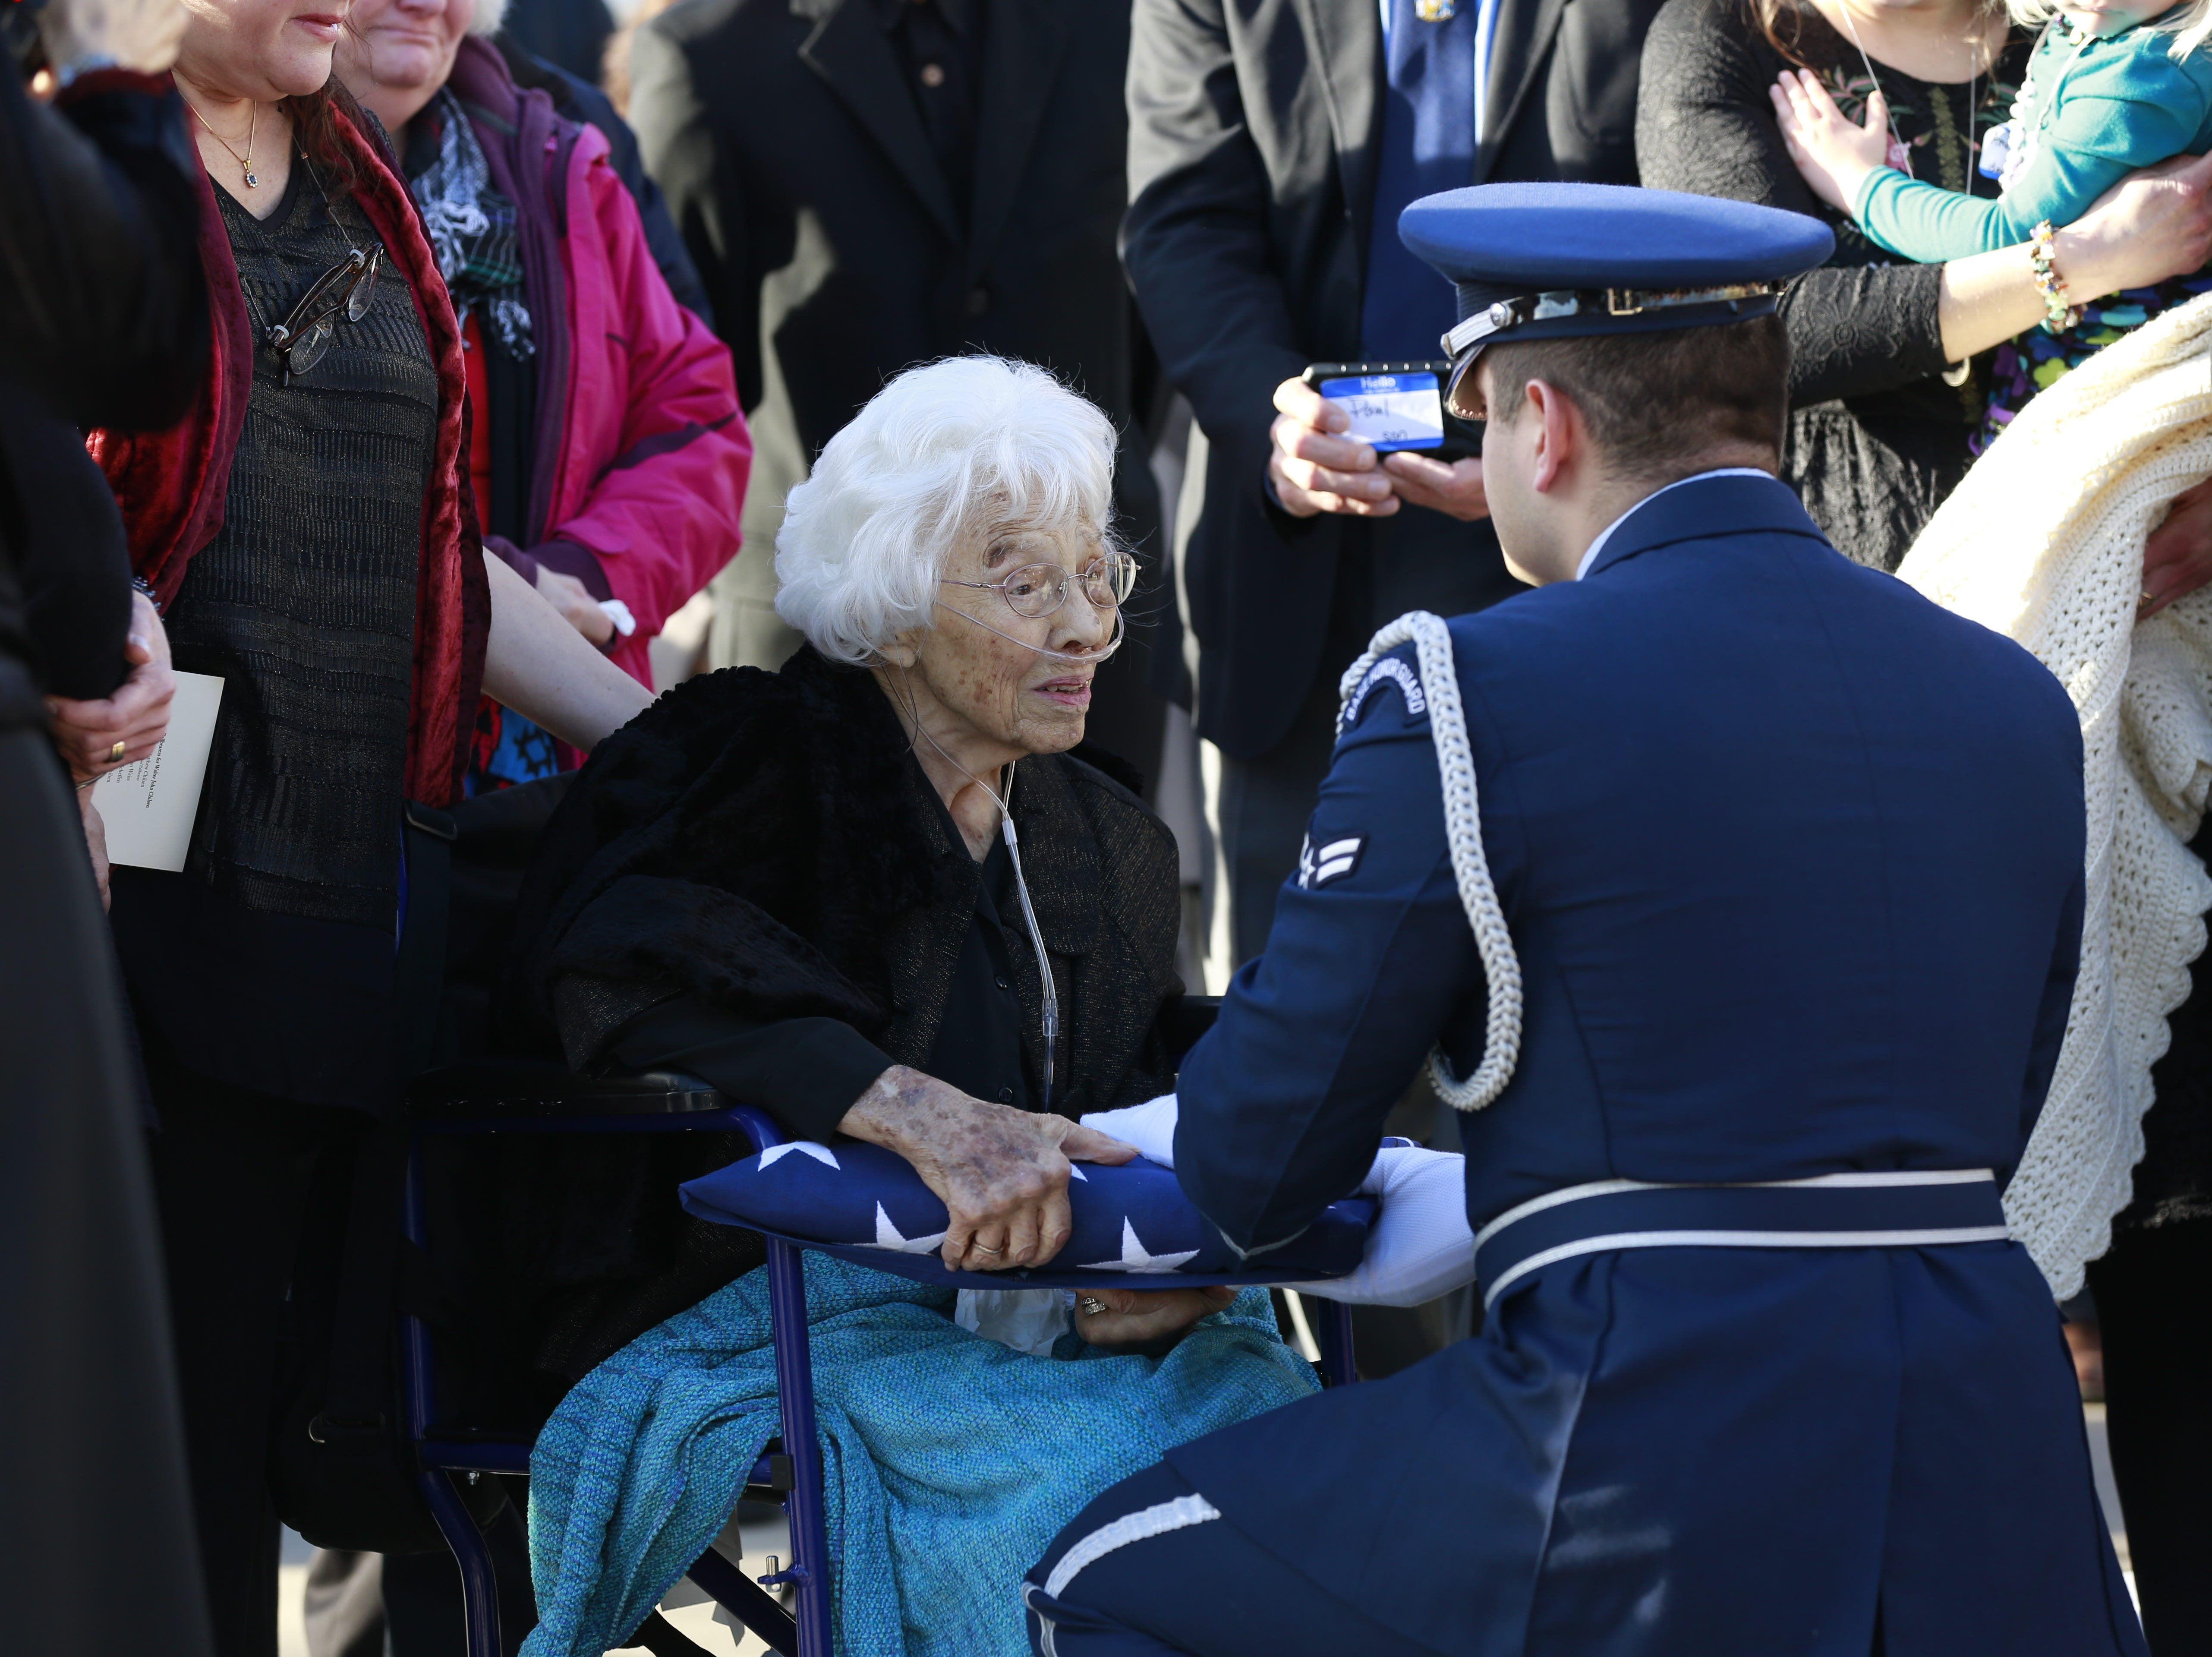 United States Air Force presents the burial flag to former Sen. Walter Chilsen's wife Rose during Sen. Walter Chilsen's funeral service Friday, Jan. 04, 2019, at Holy Name of Jesus Parish in Wausau, Wisc. T'xer Zhon Kha/USA TODAY NETWORK-Wisconsin